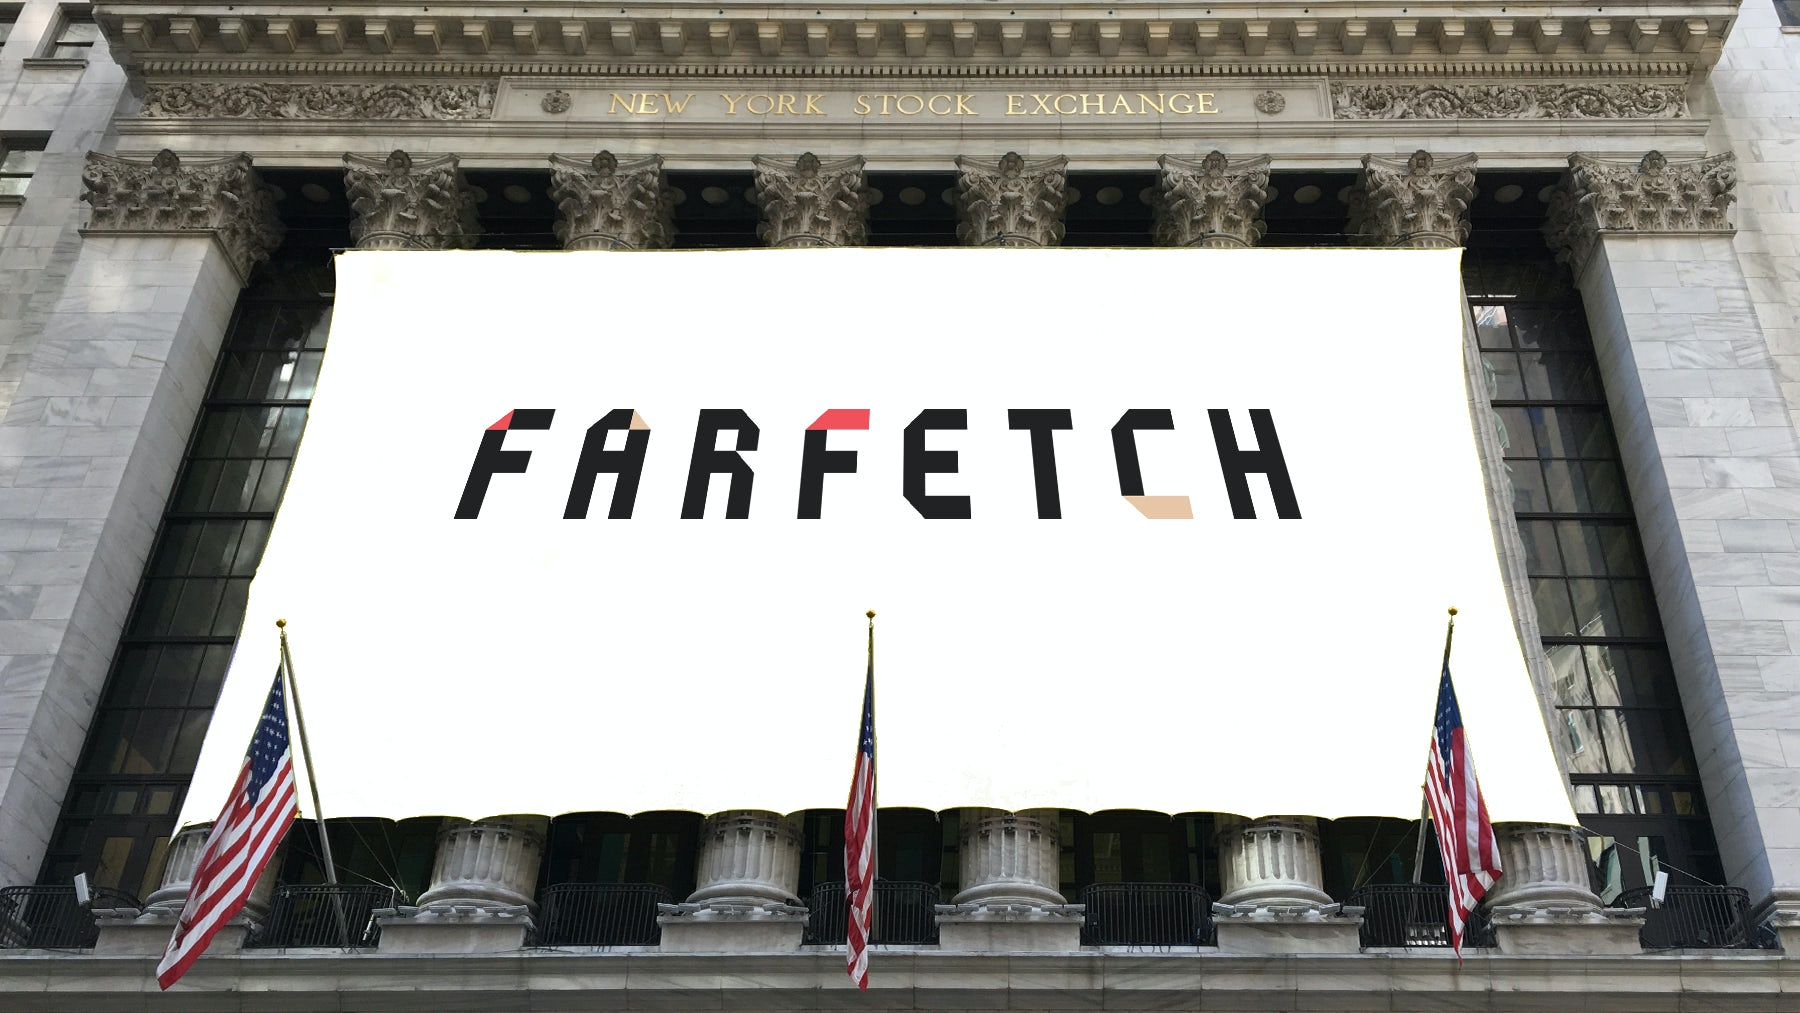 Farfetch Files for IPO and Plans to Float on New York Stock Exchange